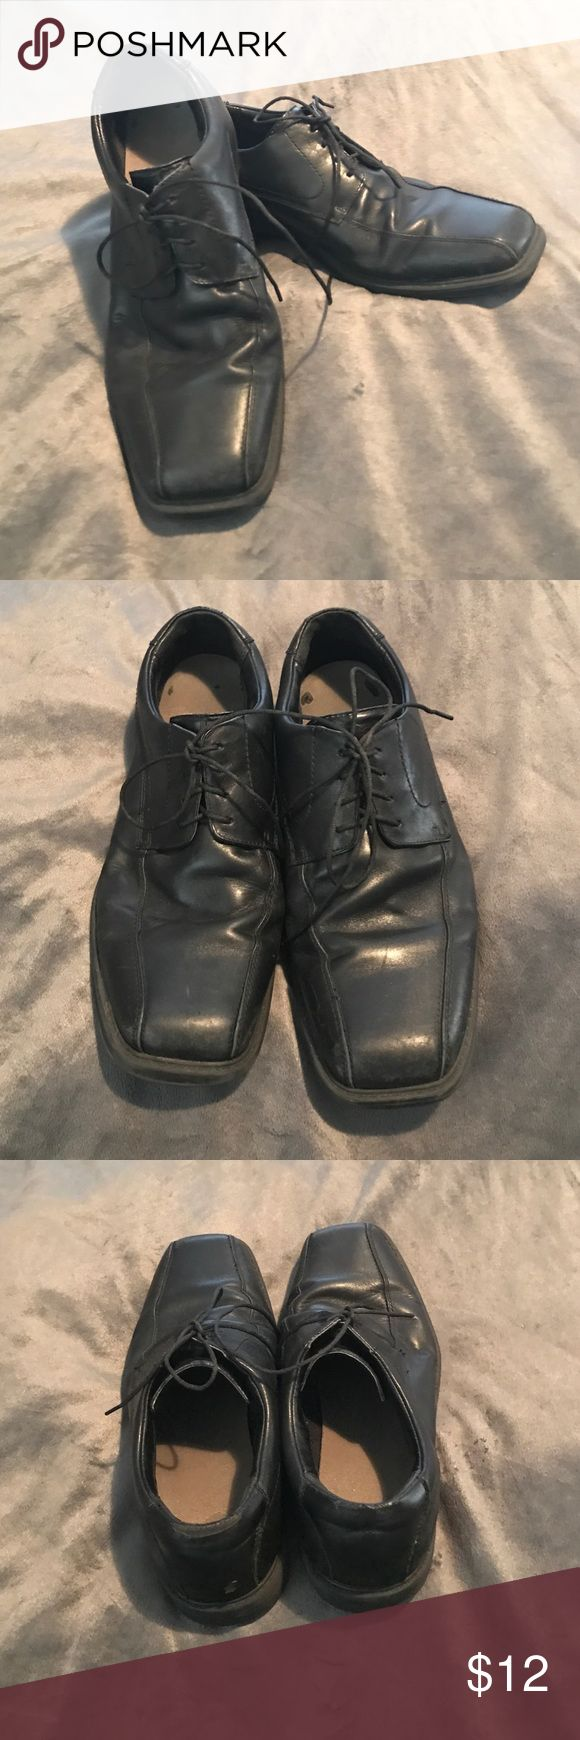 Men's Clarks Dress Shoe Black leather men's dress shoes. Good condition. Small crack in right rubber sole. No reasonable offer refused. Clarks Shoes Oxfords & Derbys